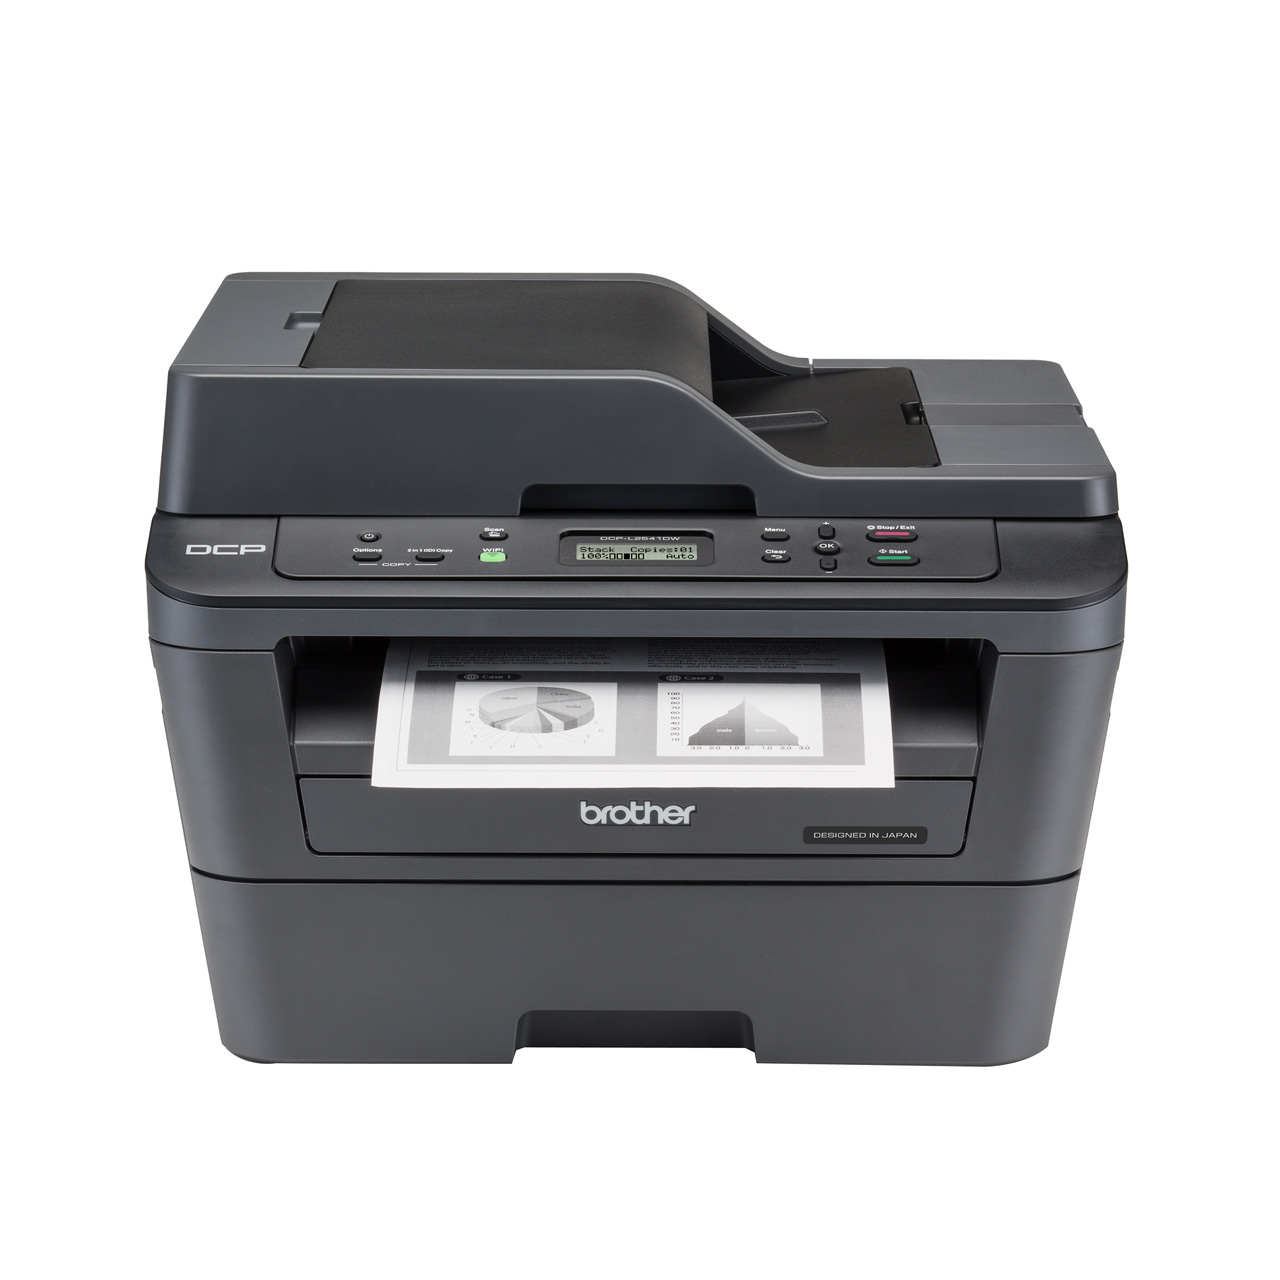 Brother Brother DCP-L2541DW Printer and Scanner